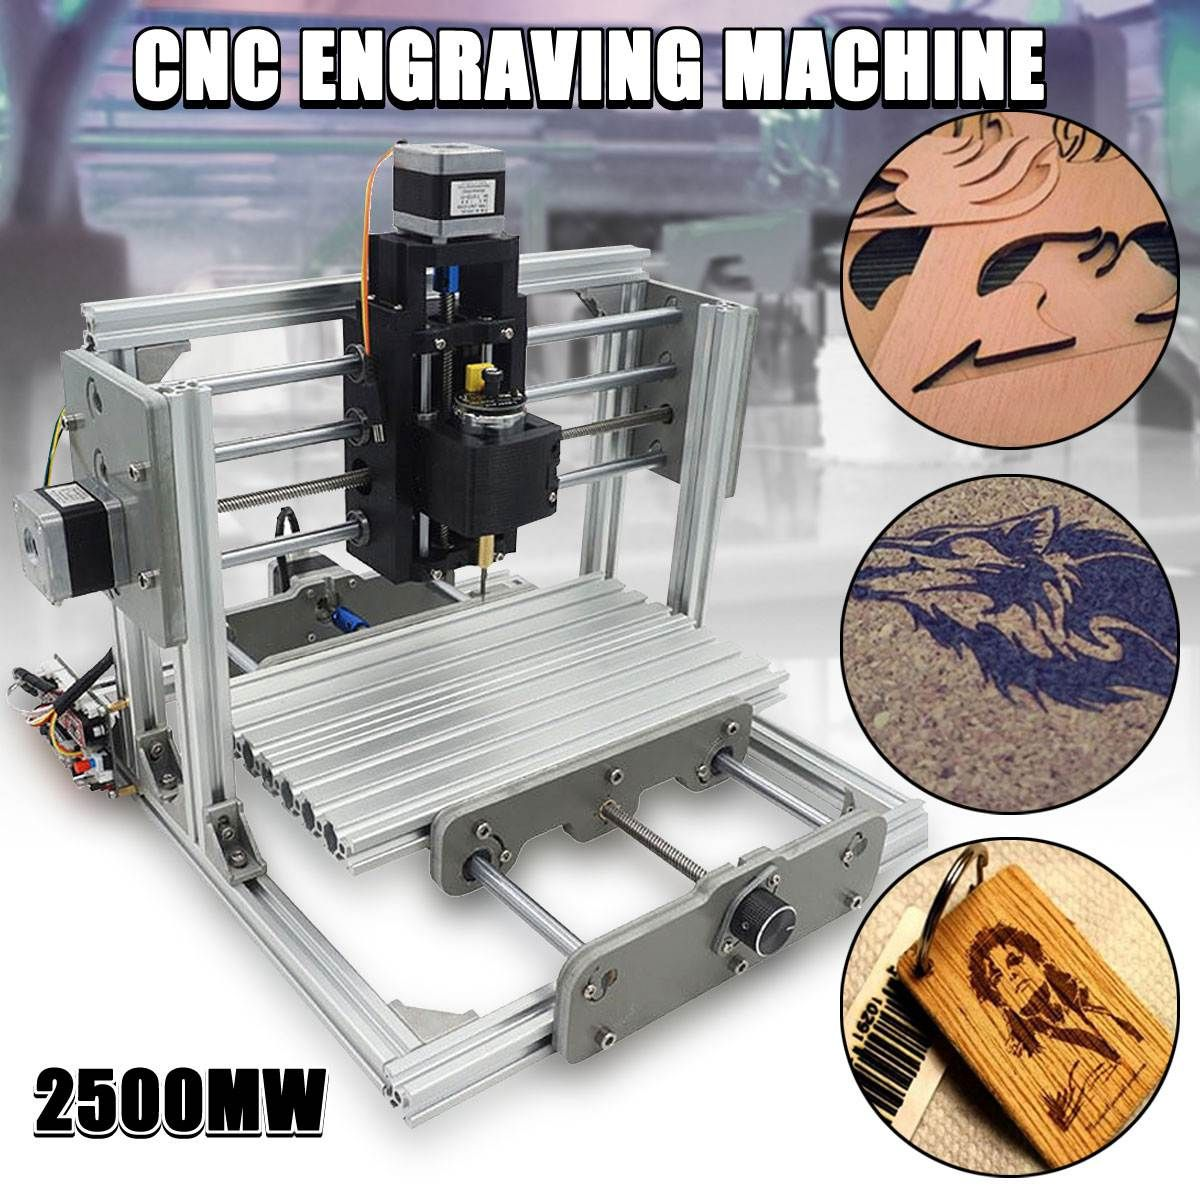 DC 12V 2500MW 3 Axis Mini DIY Desktop CNC Laser Engraver Engraving Machine Milling Carving Cutter Wood Router 0.04MM+ T8 Screws